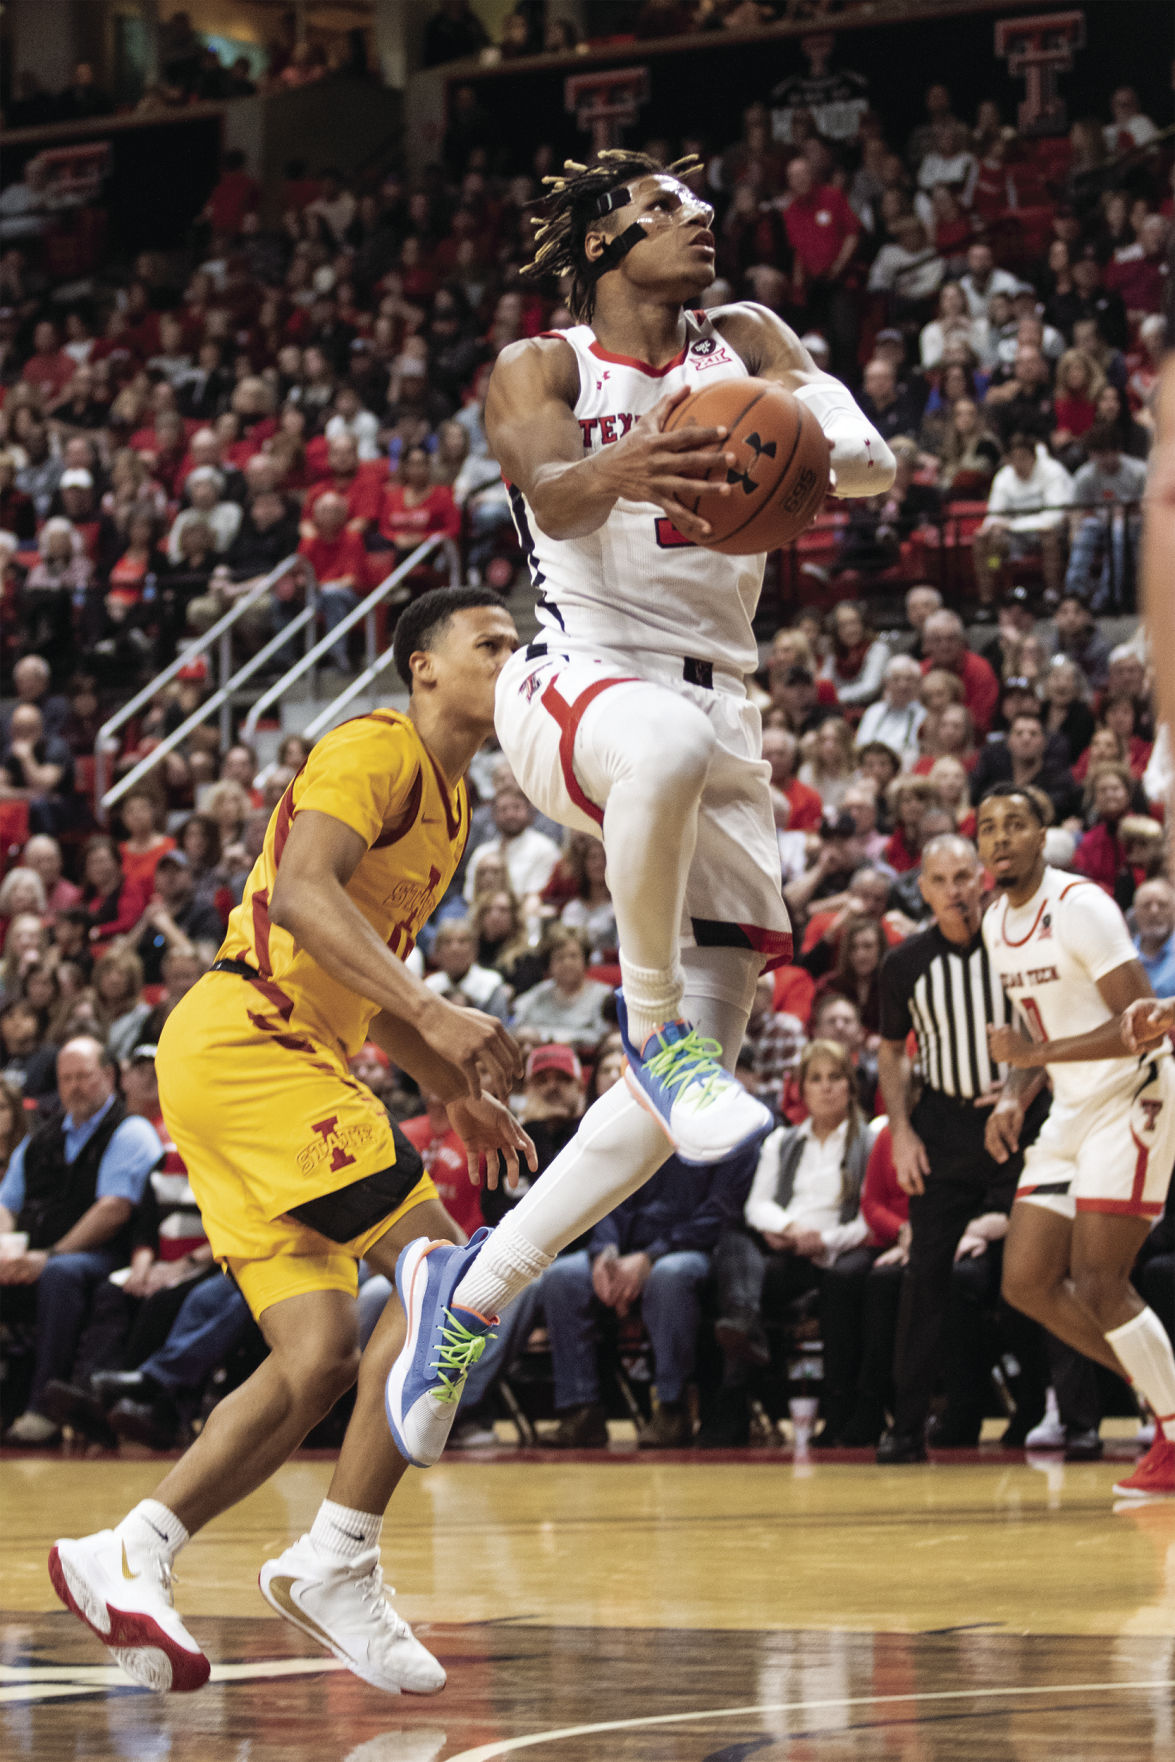 Texas Tech's Jahmi'us Ramsey goes up for a dunk against Iowa State.